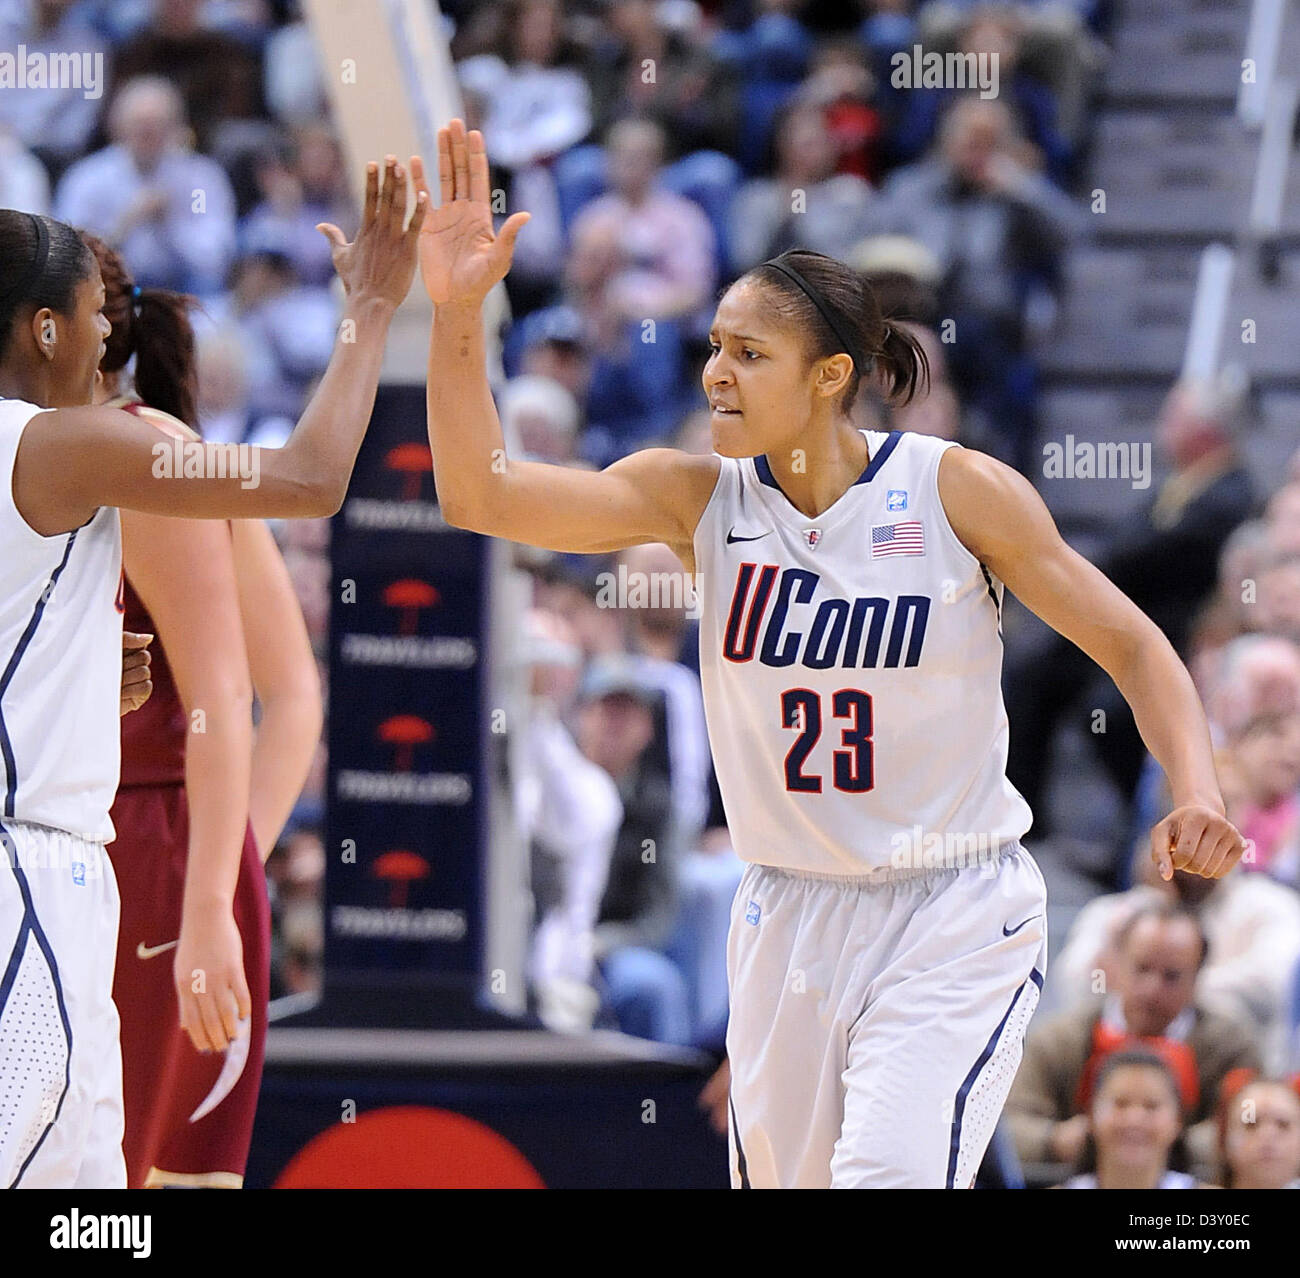 Hartford-- UCONN's Maya Moore gets a high-five from Tiffany Hayes after a basket during the first half. UCONN - Stock Image